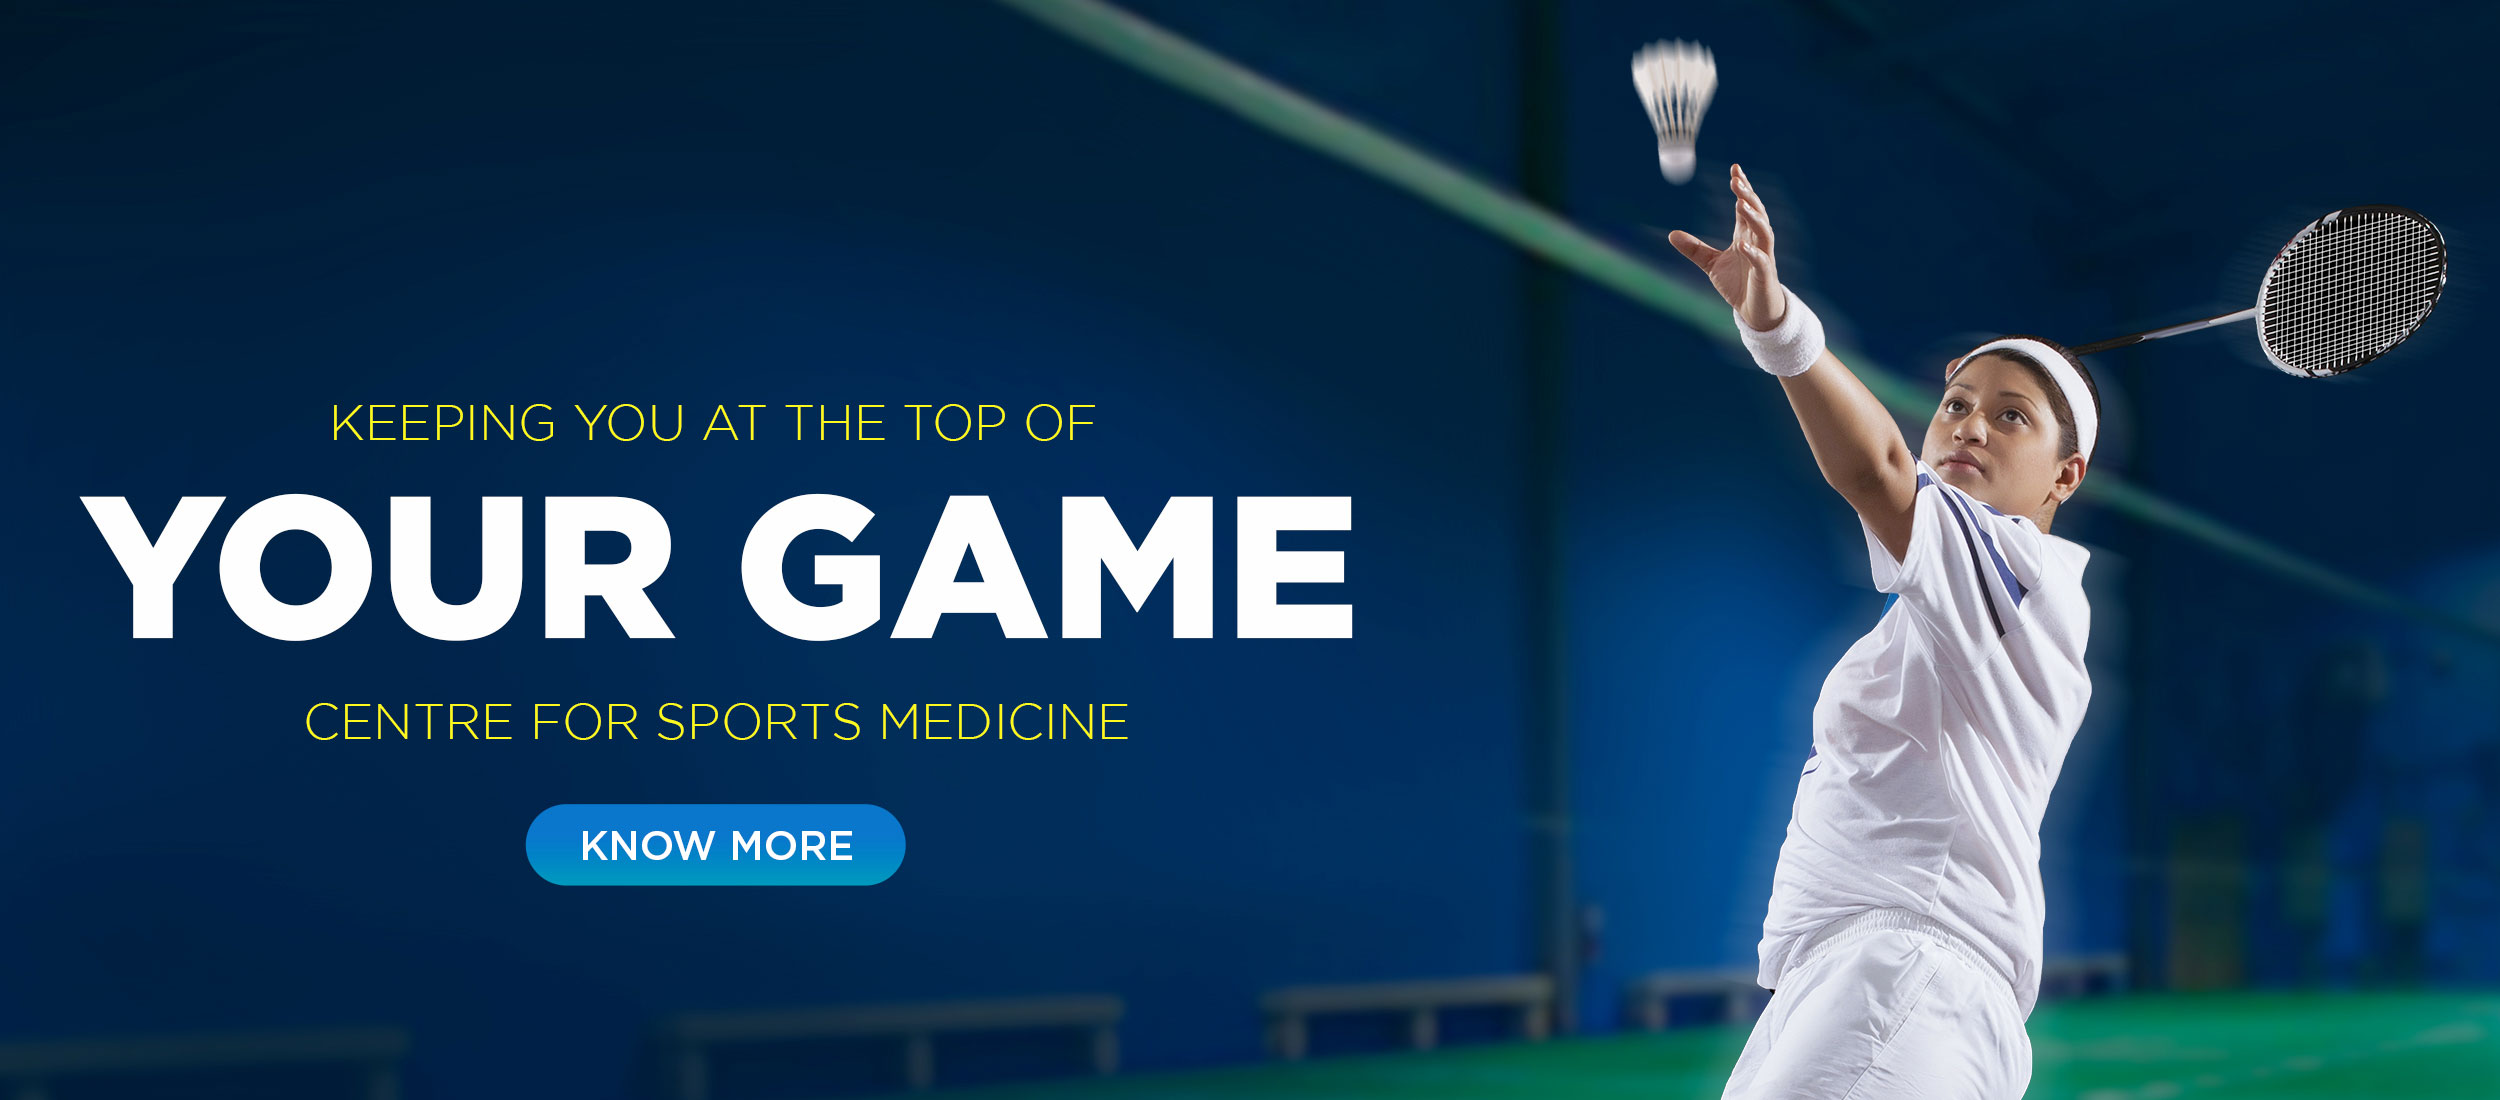 Kokilaben Dhirubhai Ambani Hospital - Keeping You At The Top Of Your Game Centre For Sports Medicine